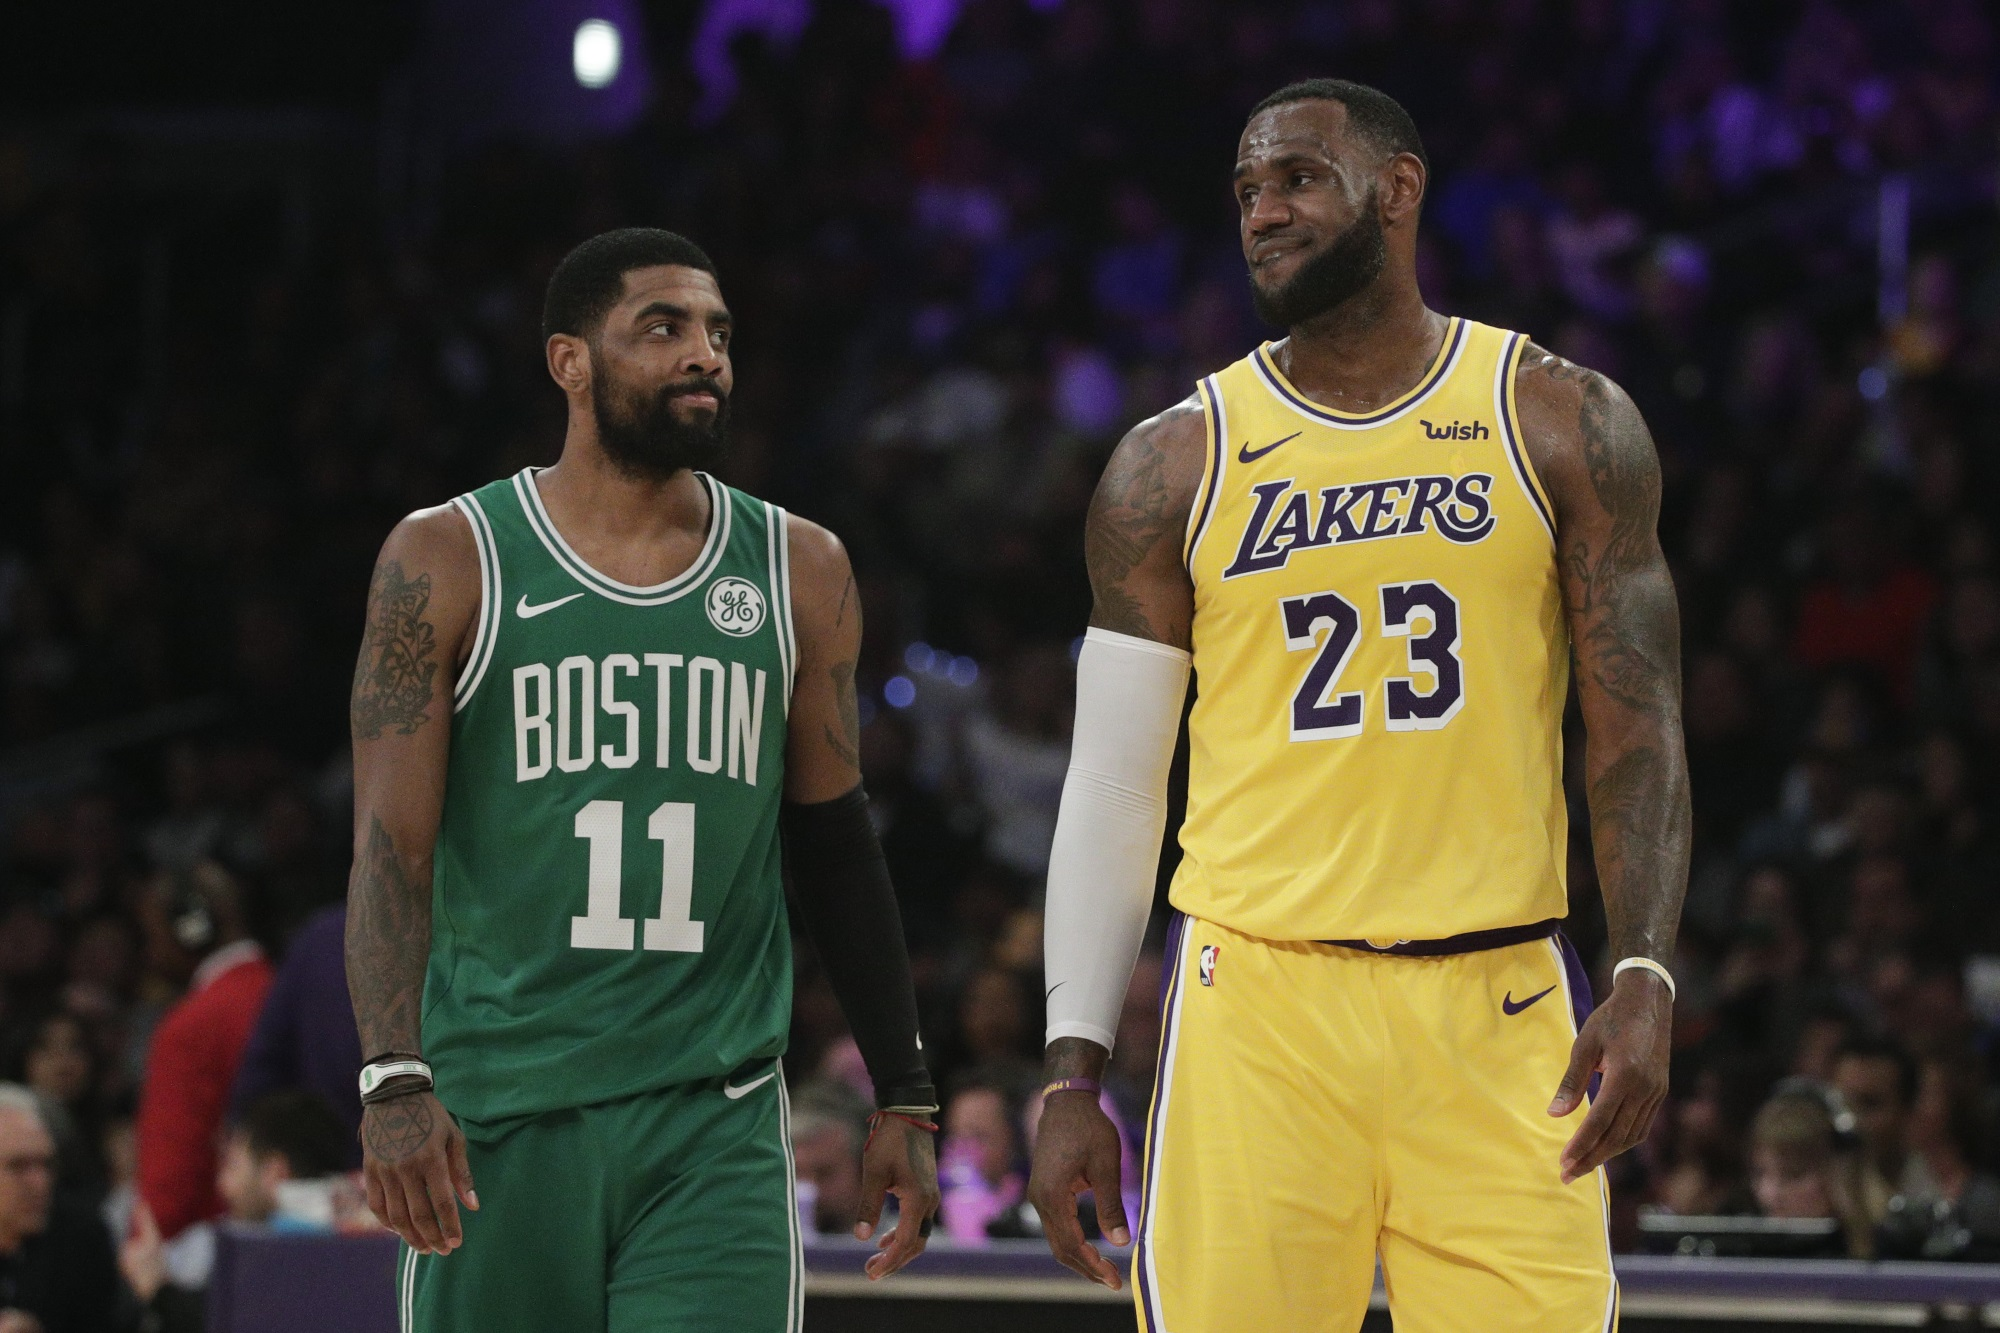 Kyrie Irving and LeBron James, Los Angeles Lakers vs Boston Celtics at Staples Center